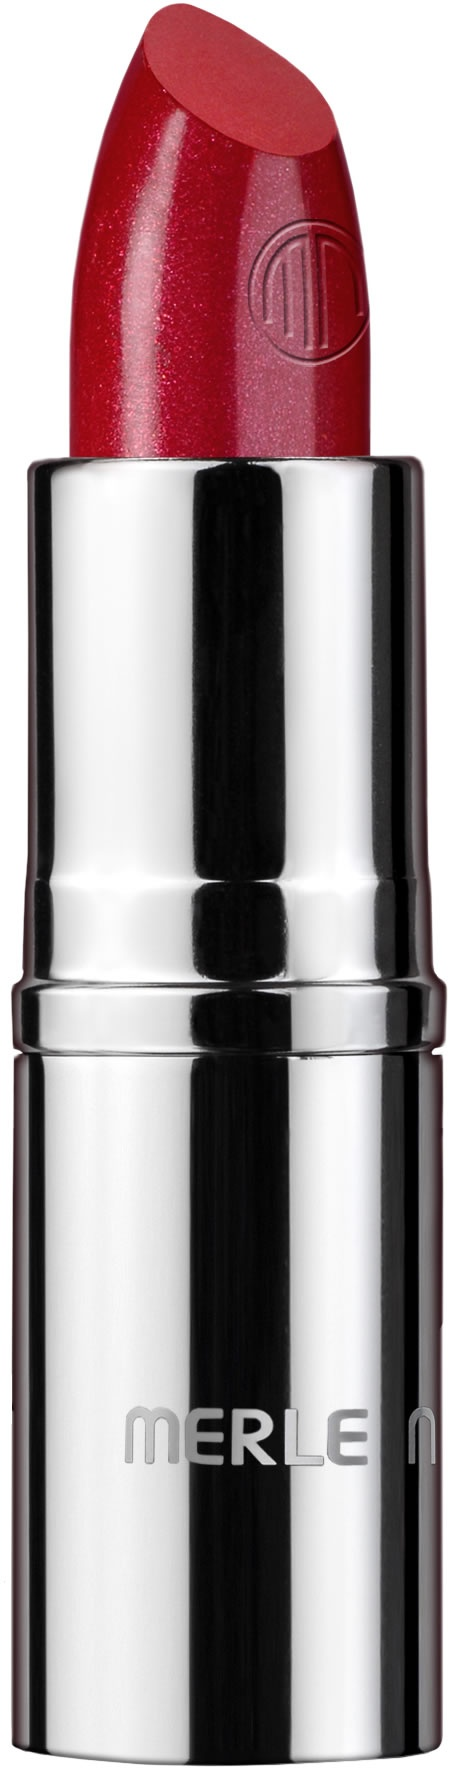 A ravishing red: Hussy Age Defying Lipcolor. Great for New Year's eve or anyday you need a fabulous red!